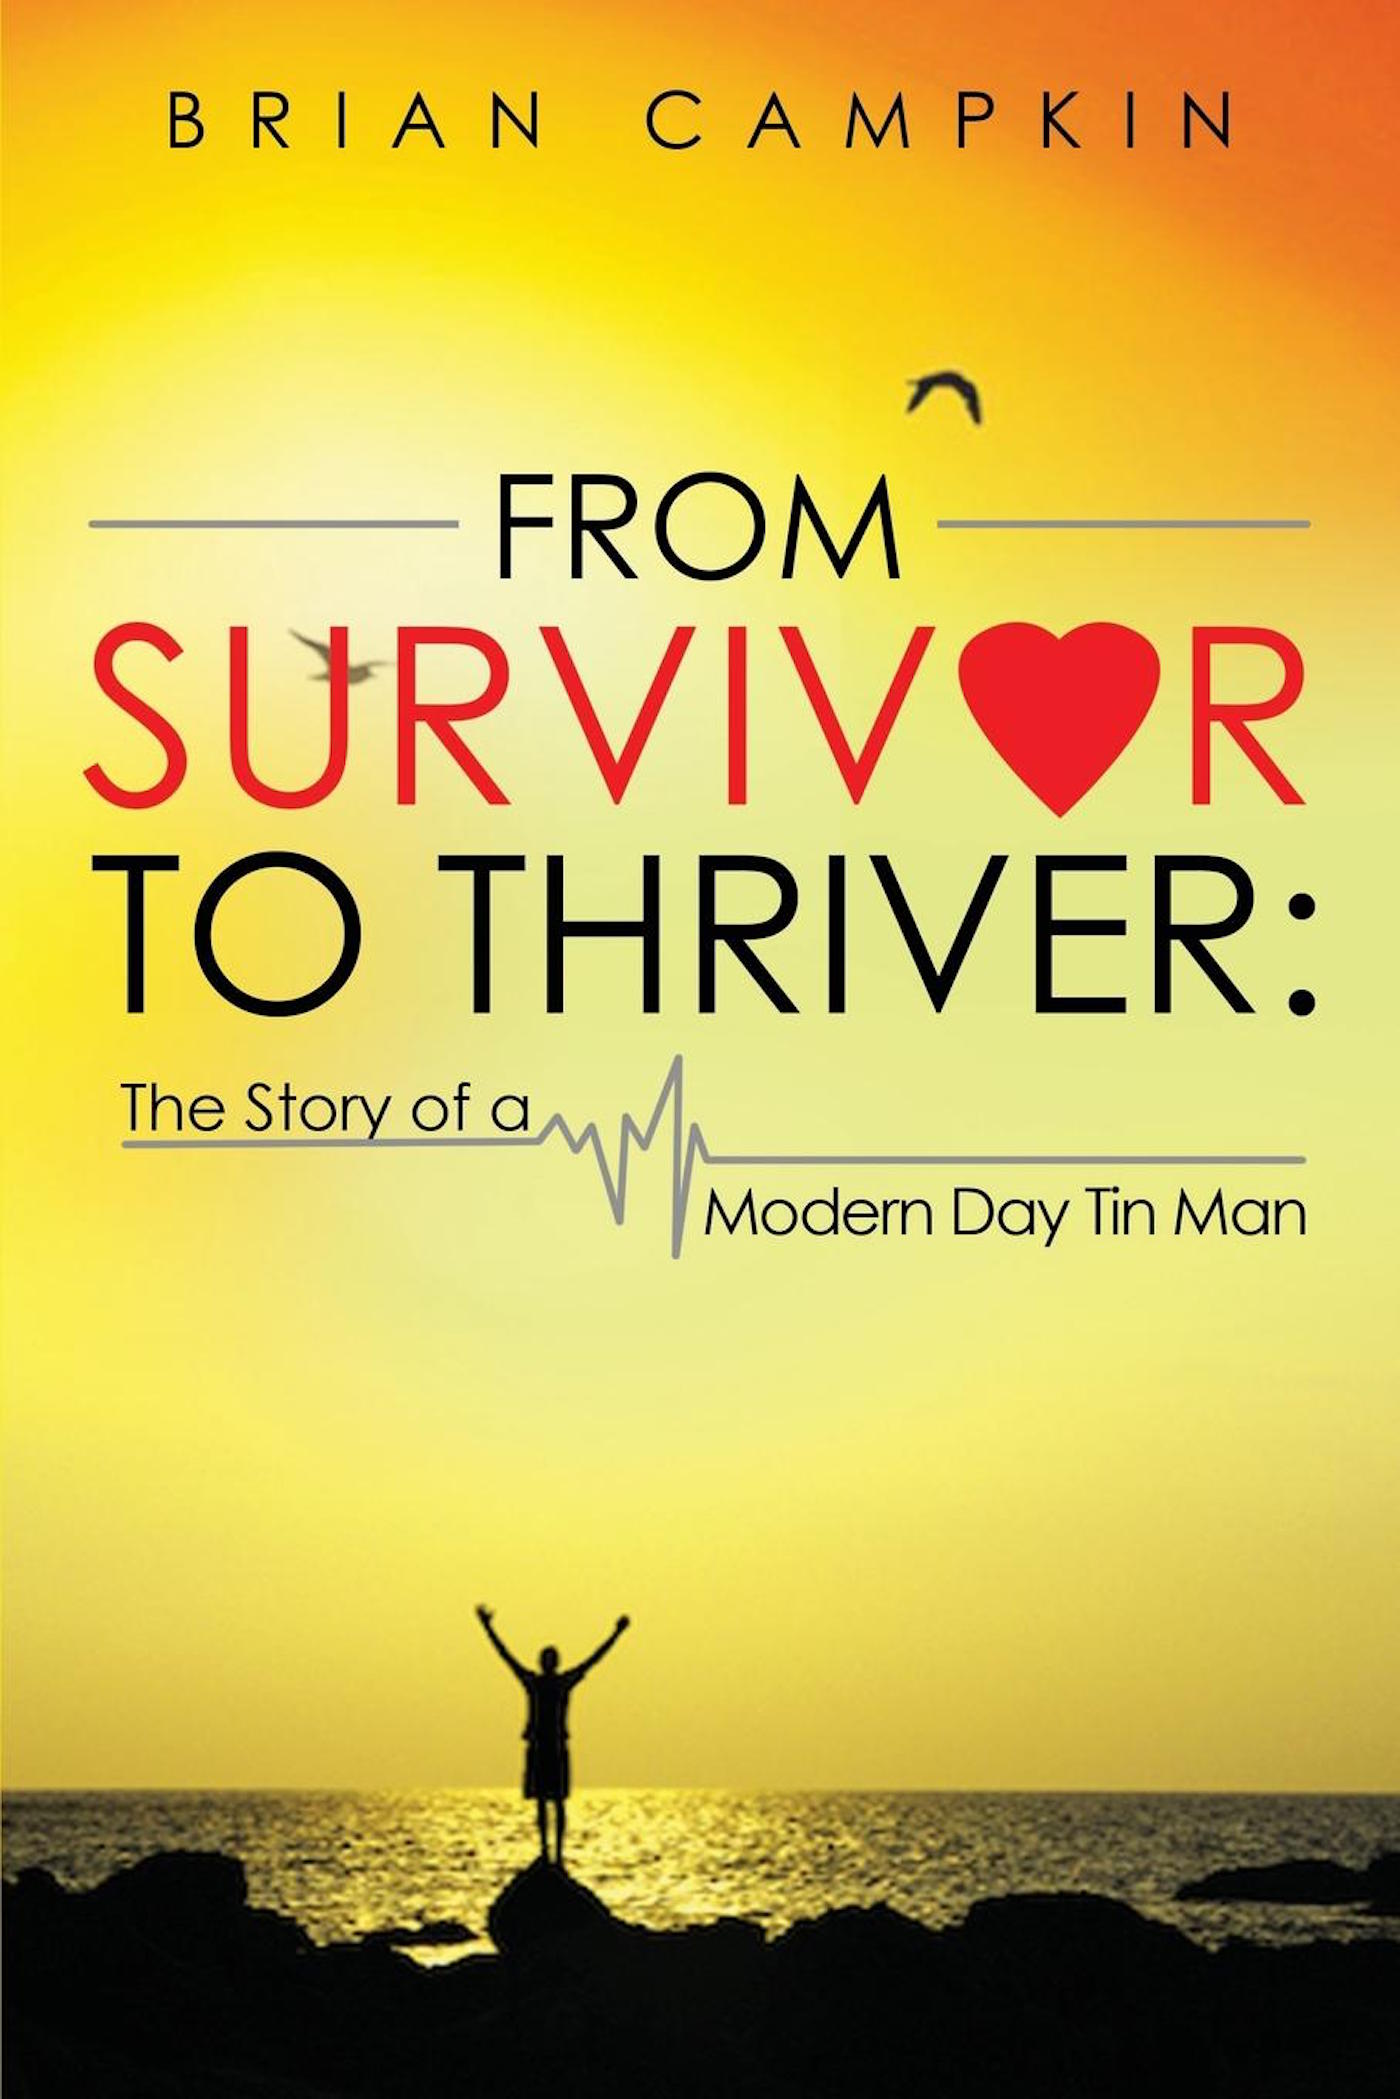 From Survivor to Thriver